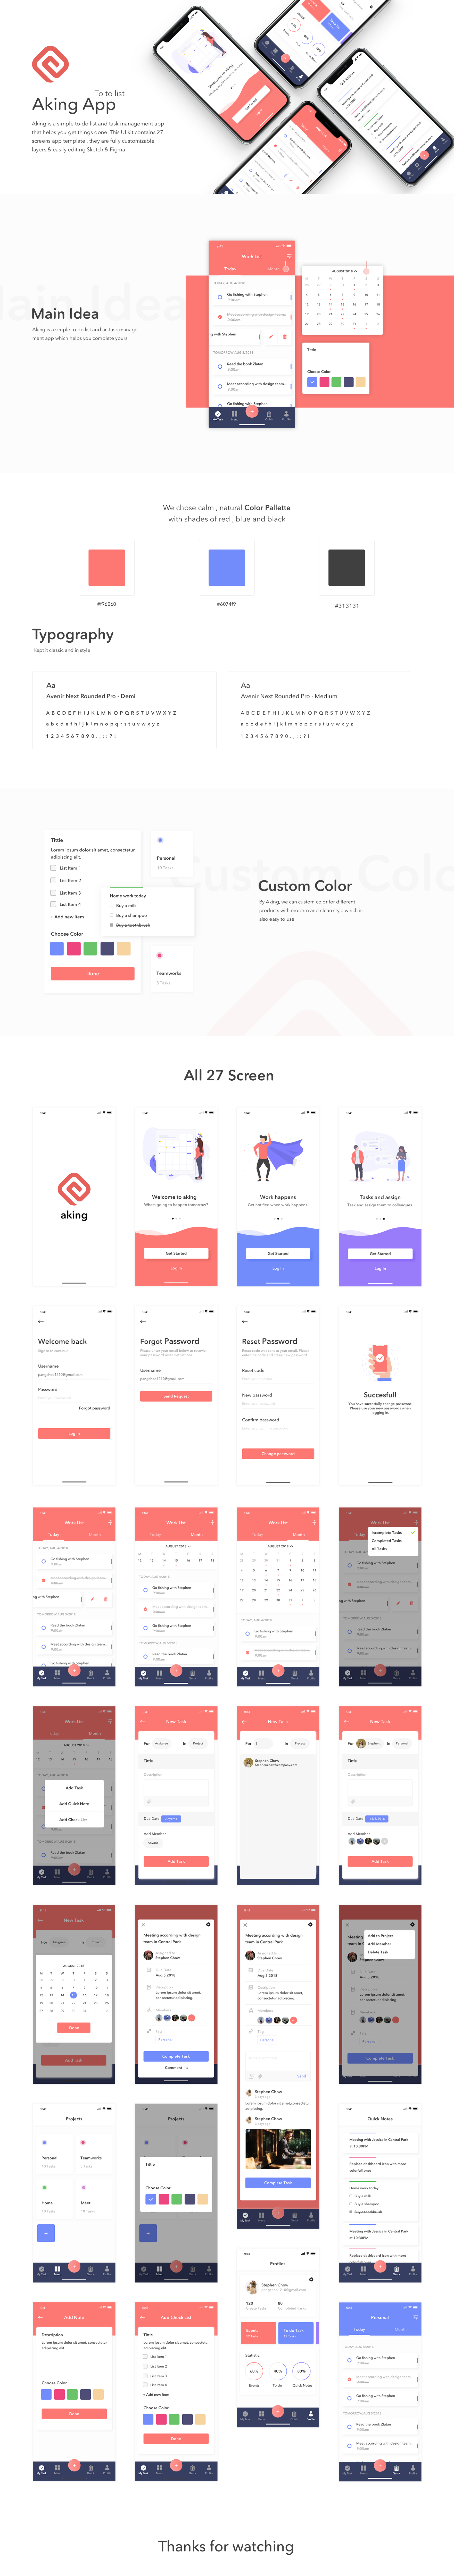 Aking To-Do List App Free UI Kit - Aking is a simple to-do list and an task management app which helps you complete yours. Though you are sharing a food list with your relatives, working on a project or making plan to go on holiday, Aking will help you take note easily, share and complete all the to-do list